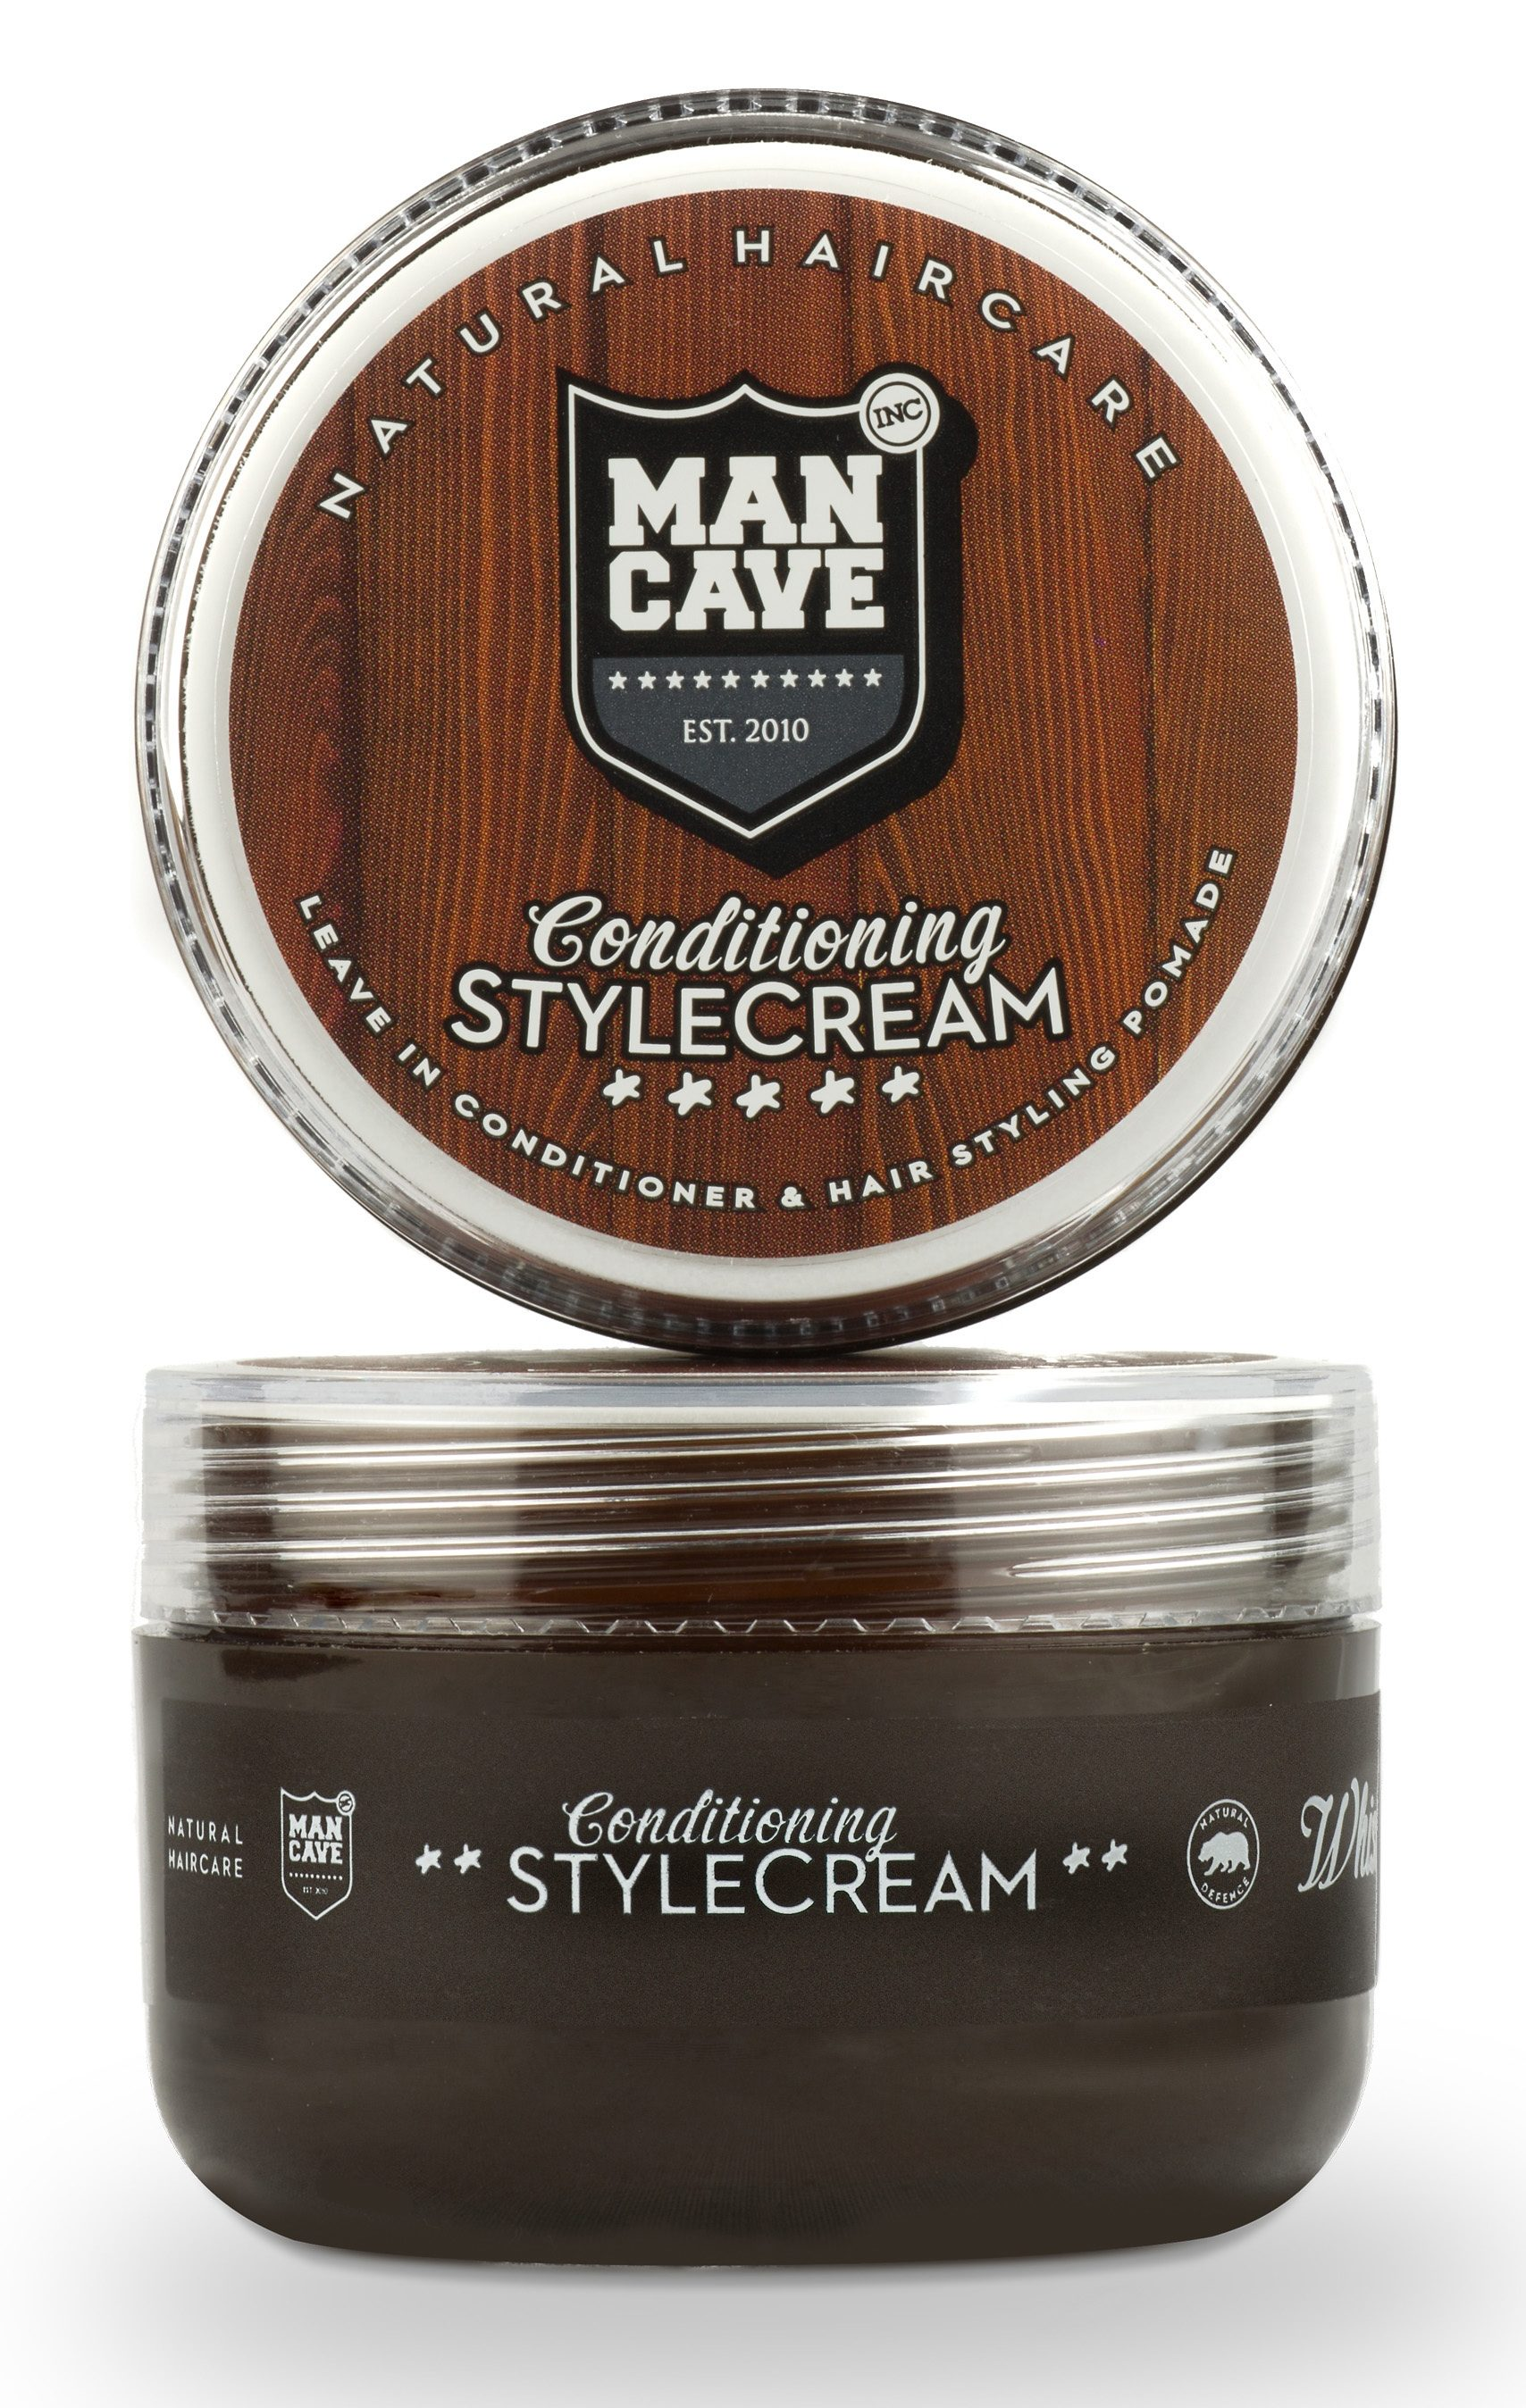 ManCave, »Conditioning StyleCream«, Haarwachs